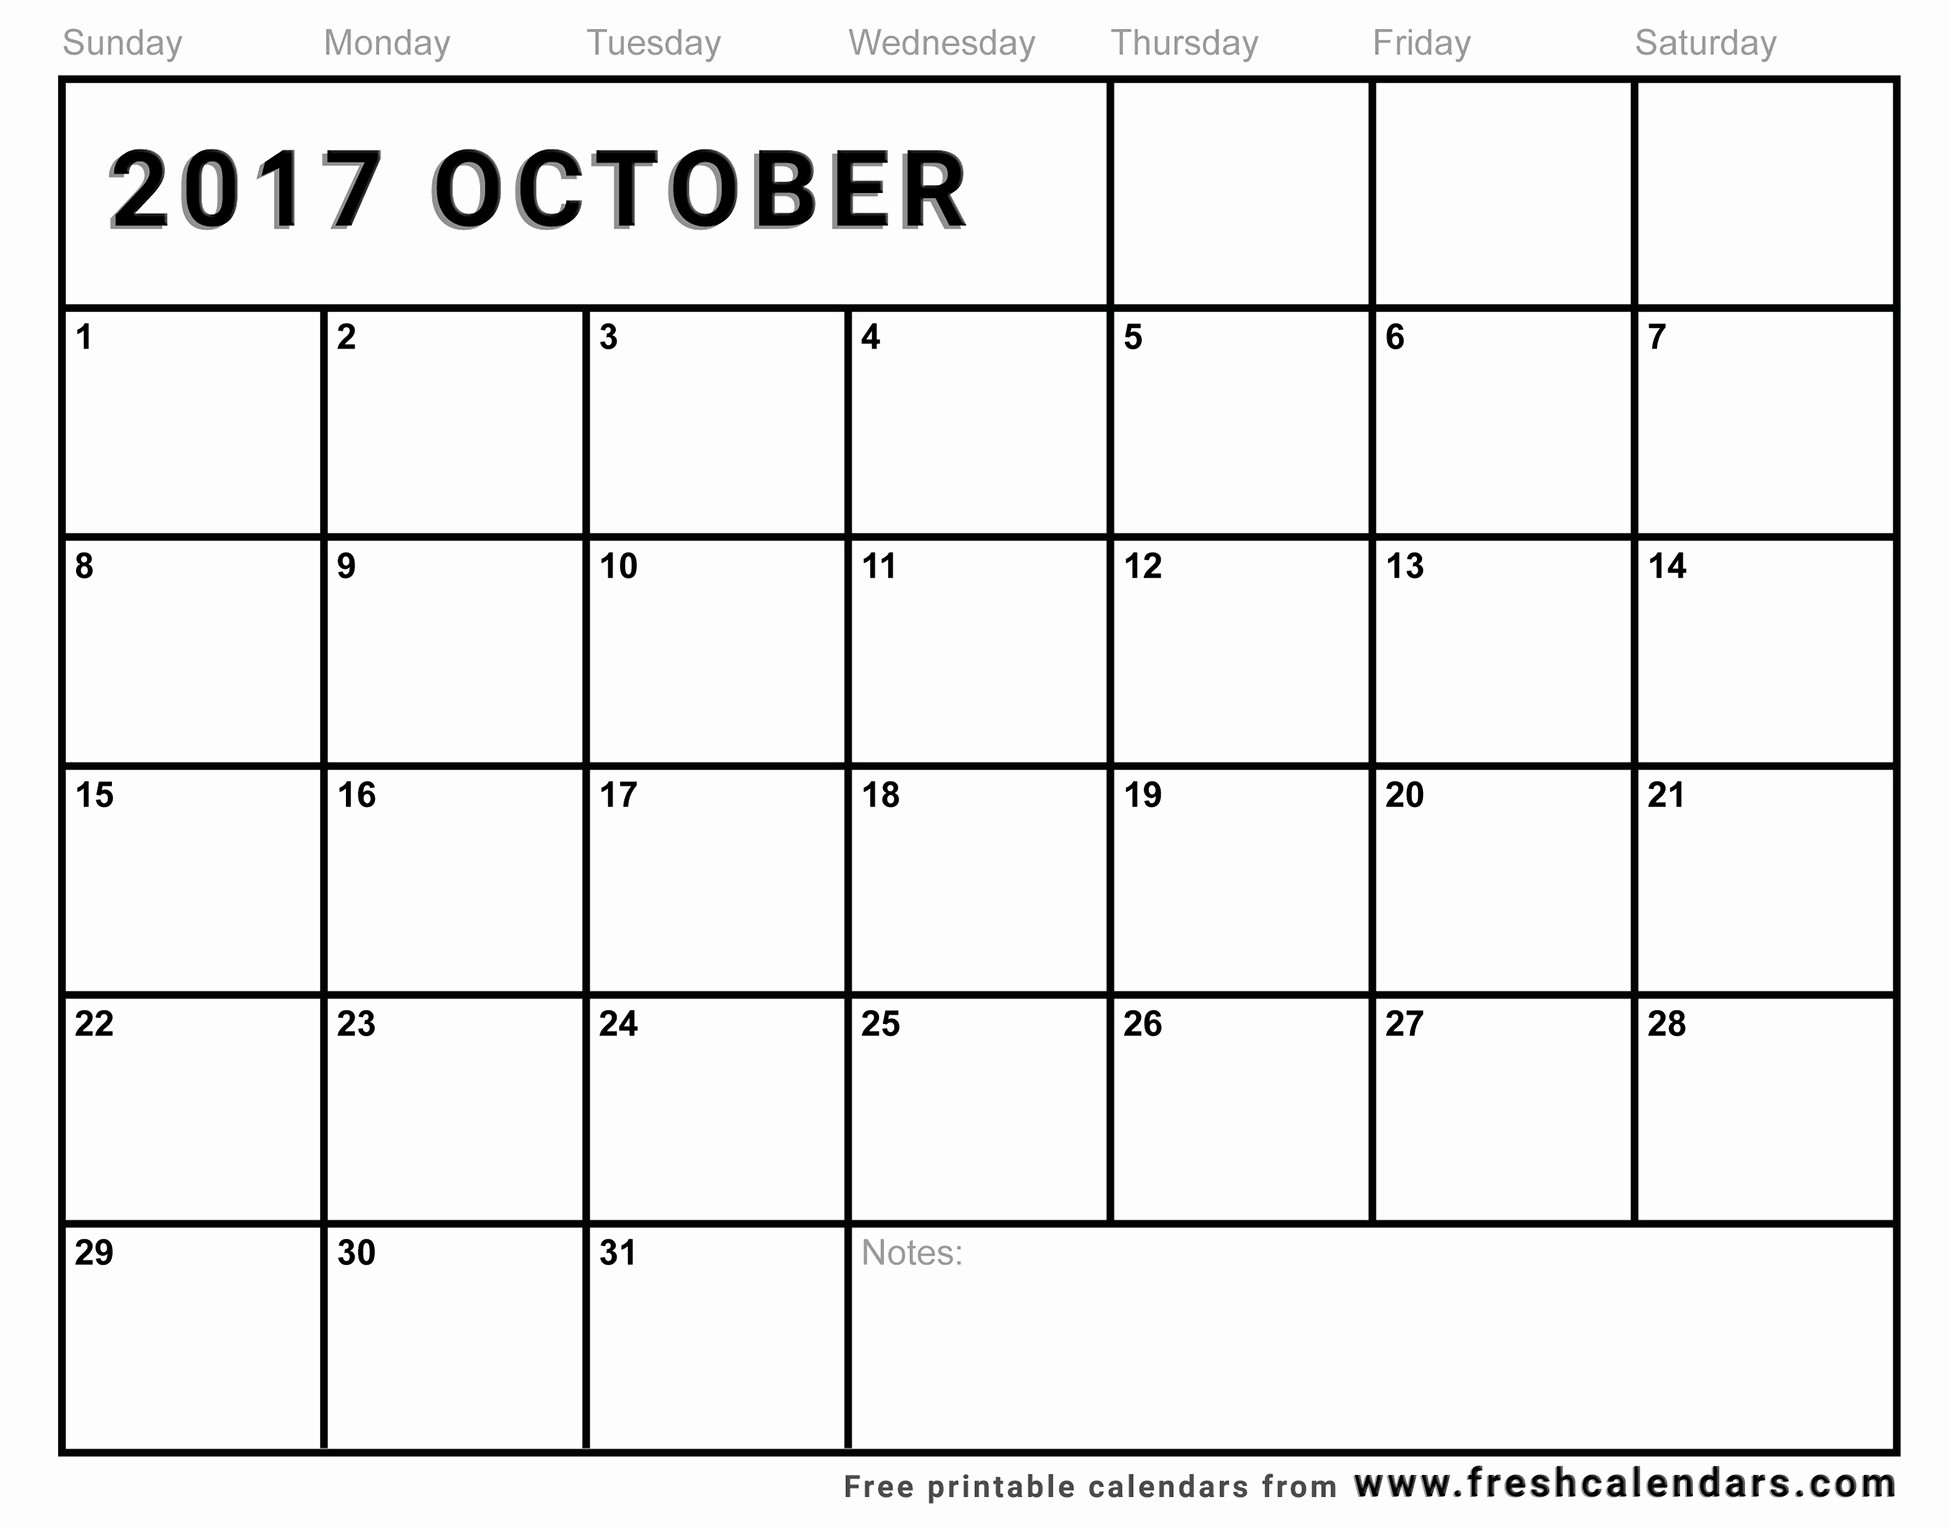 Blank Calendar Template August 2017 Inspirational Blank October 2017 Calendar Printable Templates